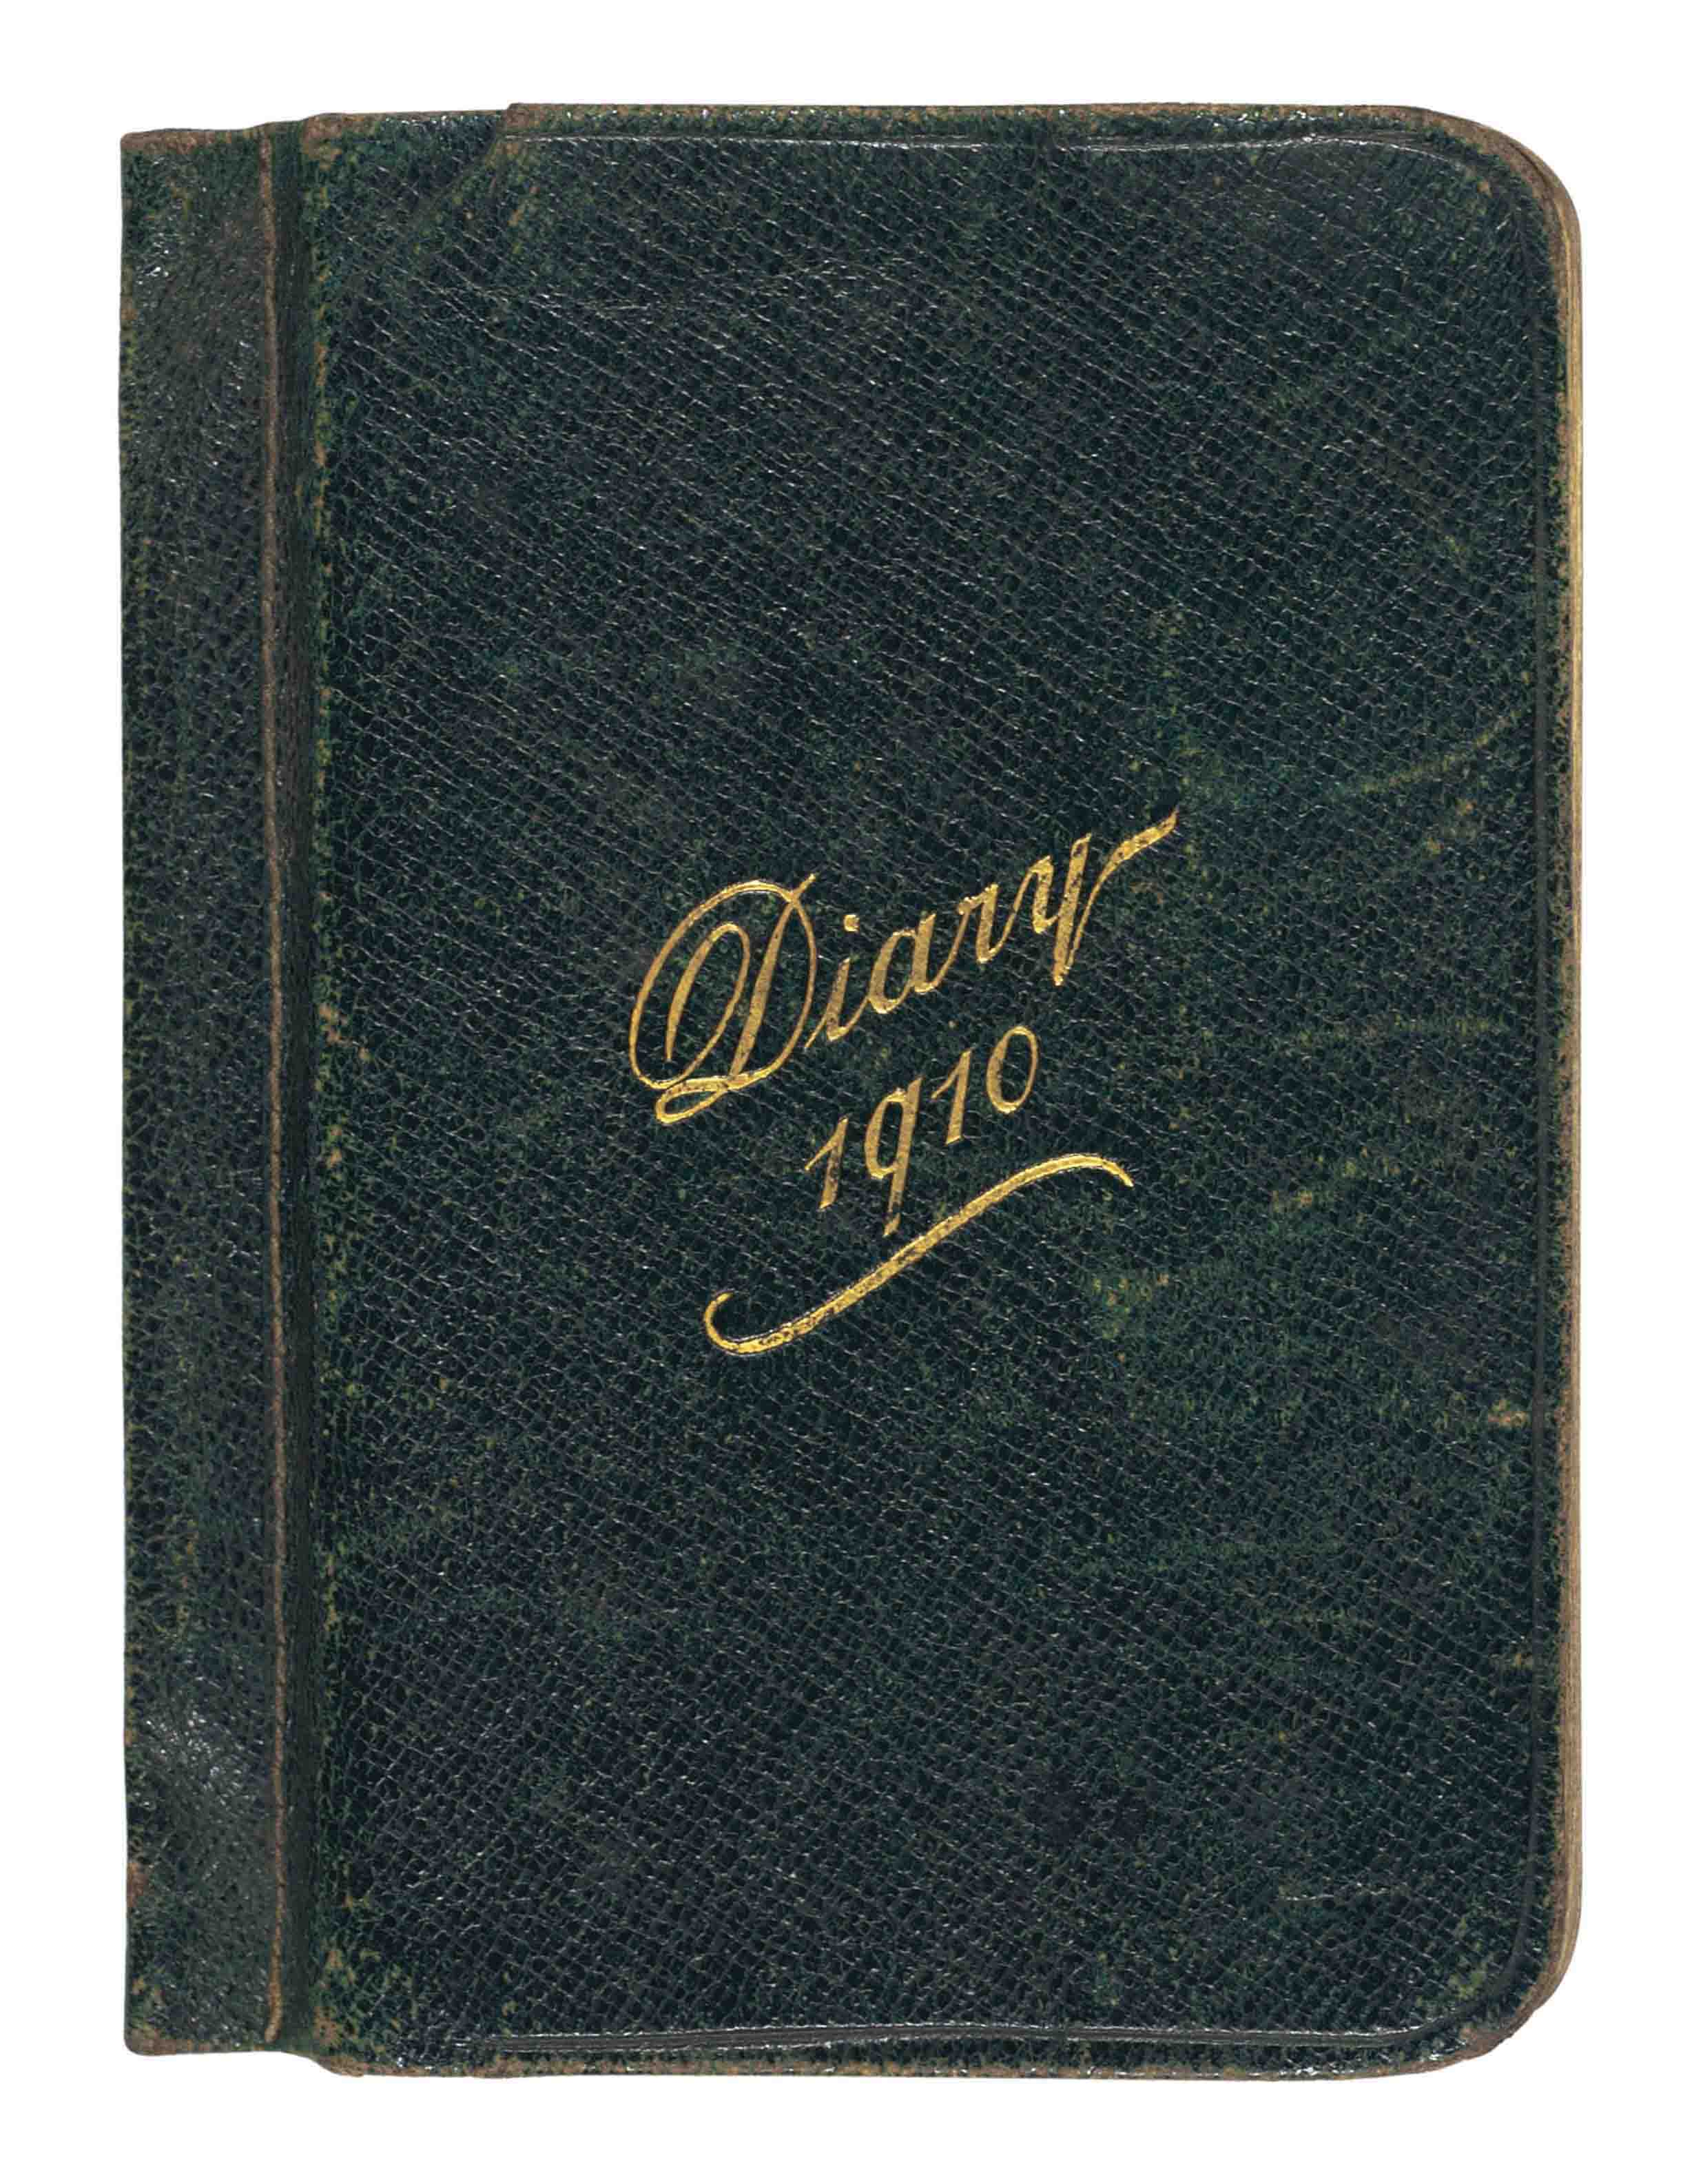 """SCOTT, Robert Falcon (1868-1912). Scott's pocket diary for 1910, an 'Army & Navy Thin Pocket Diary', ownership inscription on title ('Captain Robert F. Scott. RN &c  36-38 Victoria St.  Westminster  SW'), brief entries in pen and pencil for c.116 days between 4 December 1909 and 12 July 1910, addresses and lists of names on concluding leaves, a typed leaf 'Approximate Programme of """"Terra Nova's"""" movements' ('Leave London June 1st ... Leave Lyttelton Novr. 15th'), with four autograph emendations, inserted in pocket inside upper cover, small 8vo (122 x 90mm), green roan; [with] a gentleman's wallet, exterior black leather, lining tan leather, stamped on upper cover with initials 'R.S.', silver corner-pieces (tarnished, scuffed), visiting card of Viscount Knutsford loosely inserted, inscribed 'This book [sic] belonged to Capt Scott of S. Polar fame & was given to me by his son Peter'; [and] a portrait print of Scott, n.d. [after 1912], copyright Maull & Fox, 187 Piccadilly, facsimile signature, 497 x 359mm (soiled). Provenance: Robert Falcon Scott, and thence by descent to the present owner.  Scott's pocket diary for his last months in England offers a vivid, though elliptical, insight into the frantic pace of preparations for the Terra Nova expedition, with which almost all the entries are in some way concerned. The earliest, for 4 December 1909, notes 'Interview Drs Wilson & Atkinson'; on 20 December, 'Wilson with Candidates'; other appointments as the months go by include practical meetings at the Australian and New Zealand High Commissions, the Admiralty and the R.G.S.; his departure for Norway is noted on 26 February, where on 1 March he is to 'Go to furs people & sledges'. Many of the entries reflect Scott's preoccupation with the financing of the expedition, which takes him on tours to Middlesbrough, Manchester, Liverpool and elsewhere, and the necessary round of dinners, lectures and press calls. As the date of the expedition's departure approaches, on 27 April"""